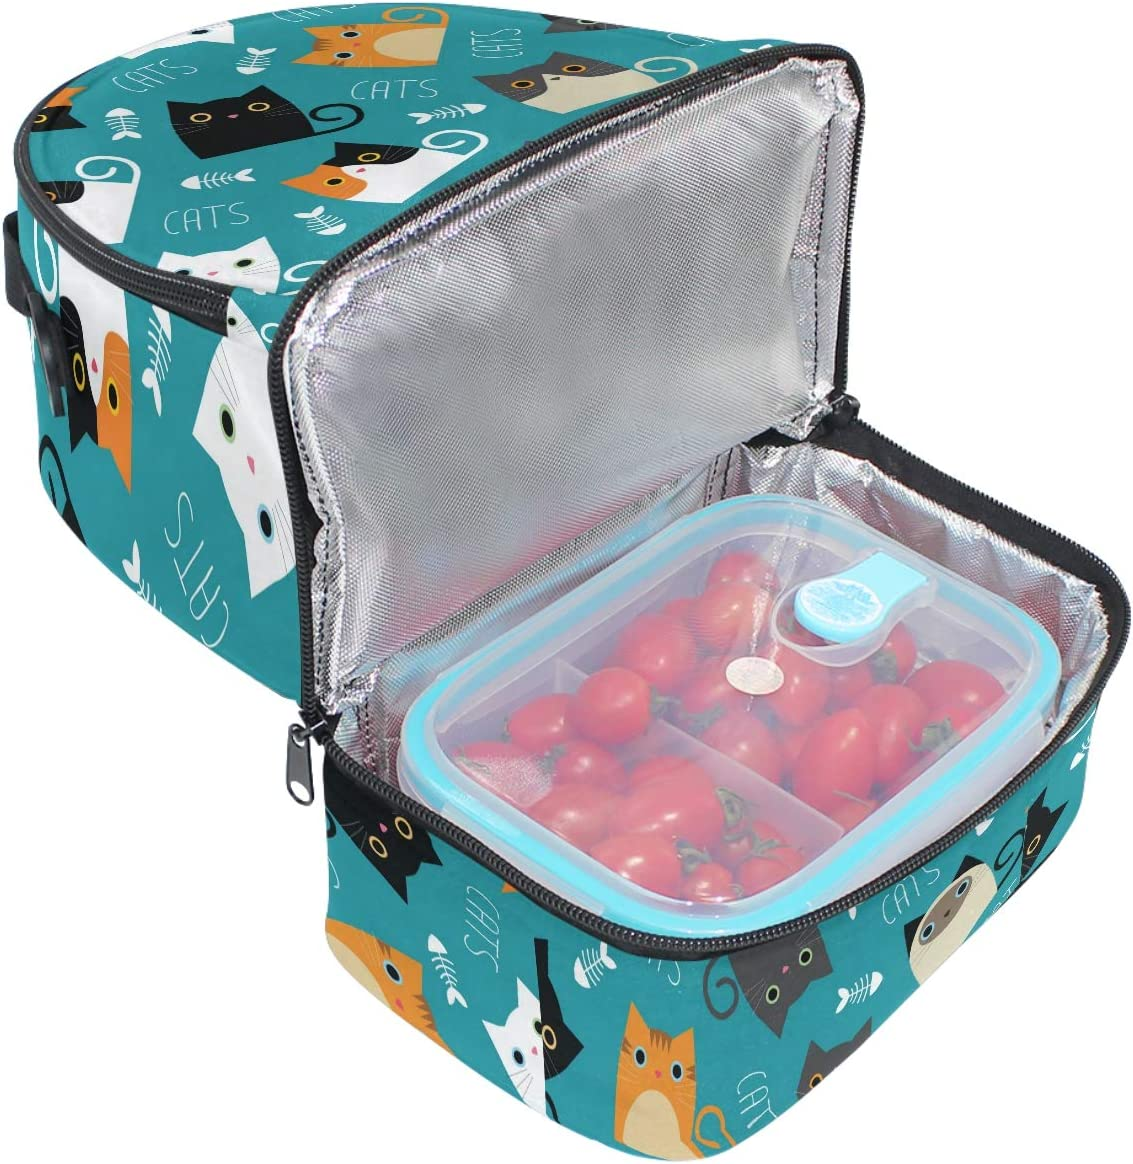 Naanle Christmas Style Red and White Polka Dot Double Decker Insulated Lunch Box Bag Waterproof Leakproof Cooler Thermal Tote Bag Large for Men Women Youth